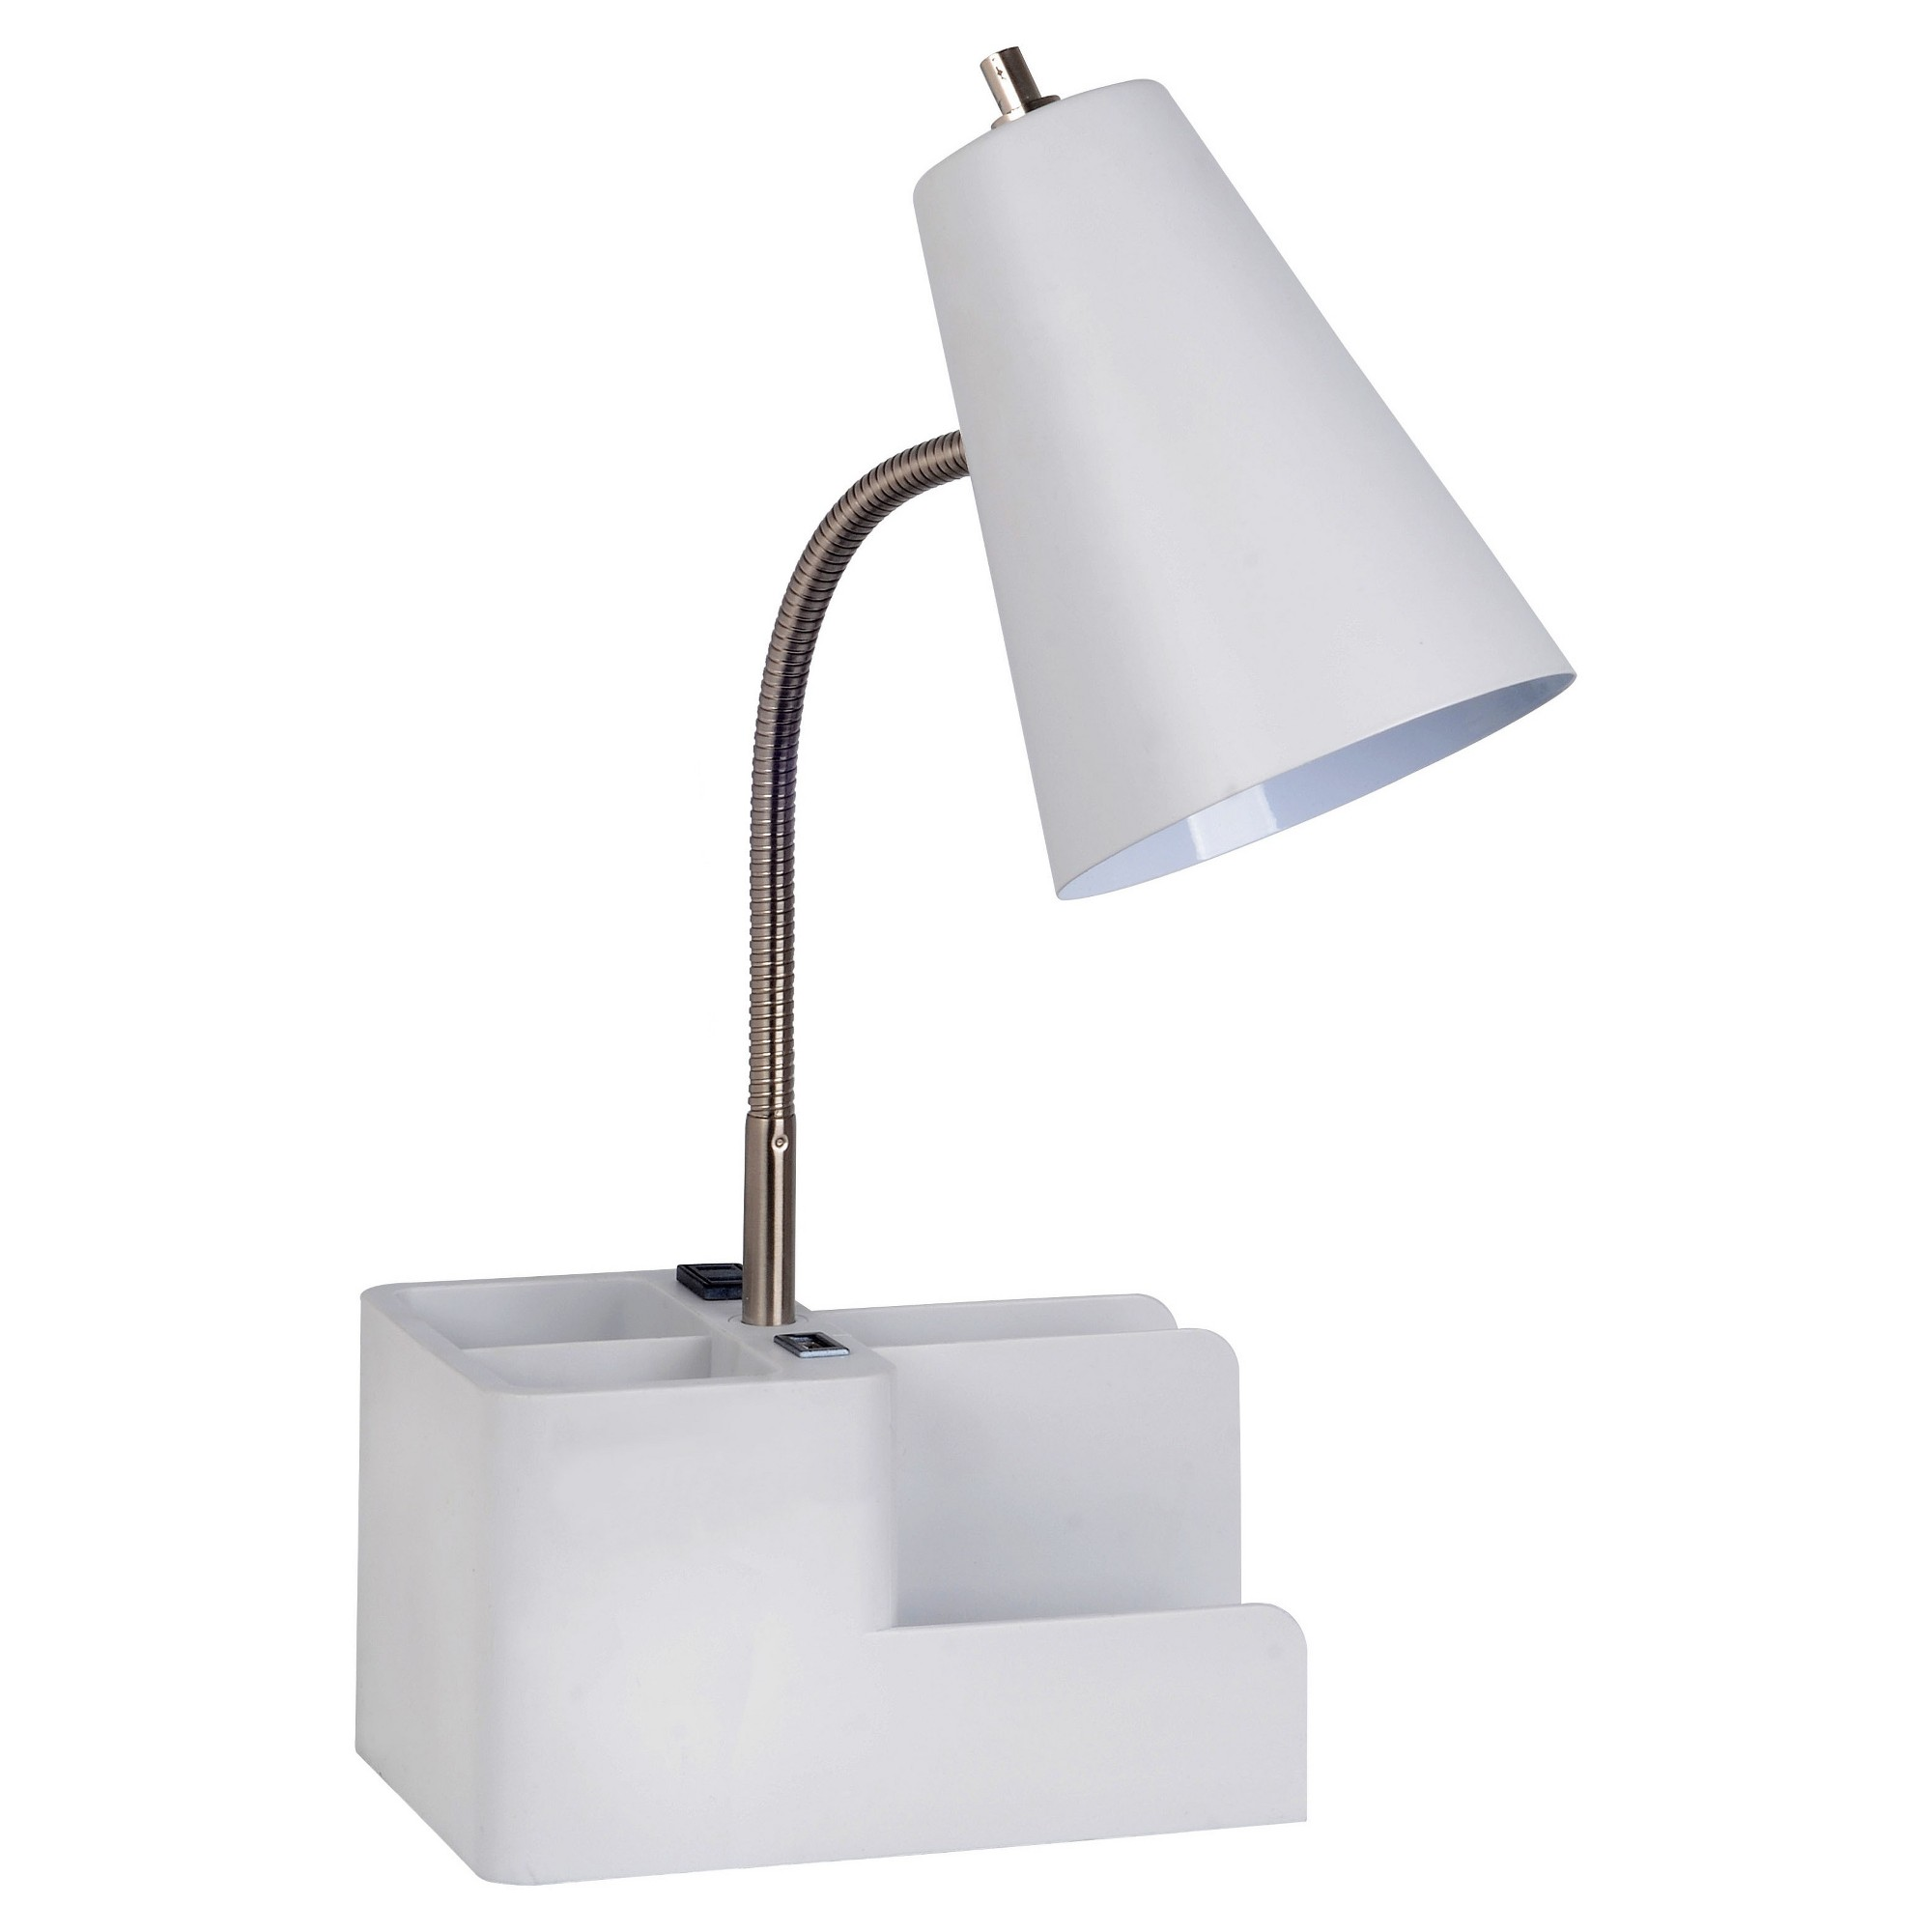 Phenomenal Organizer Task Lamp White Includes Energy Efficient Light Home Remodeling Inspirations Basidirectenergyitoicom